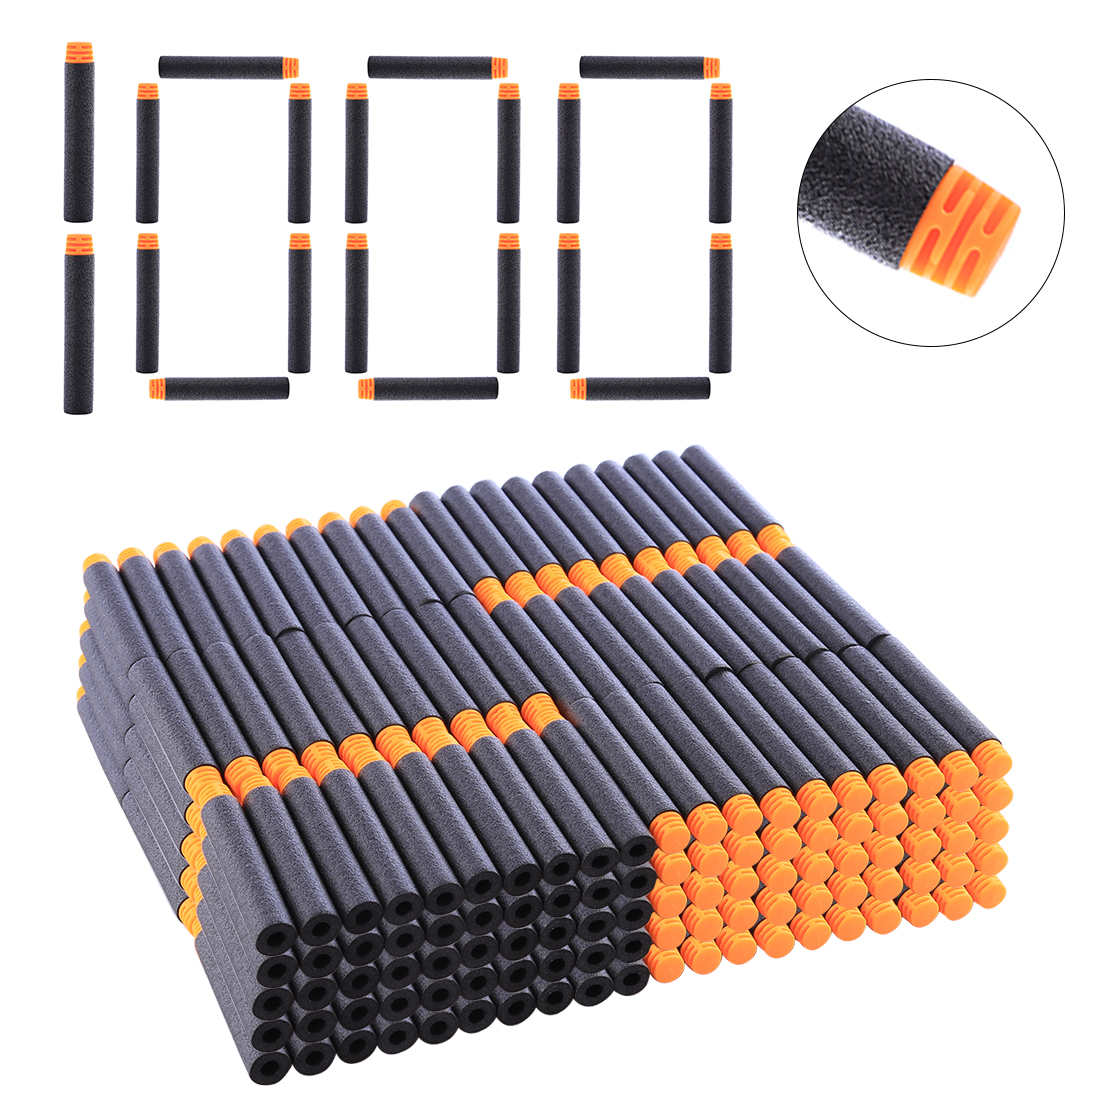 High Buffered Soft Bullet Flat Head Soft Darts With Orange Head For Nerf Children Outdoor Shooting Prictice Accessories